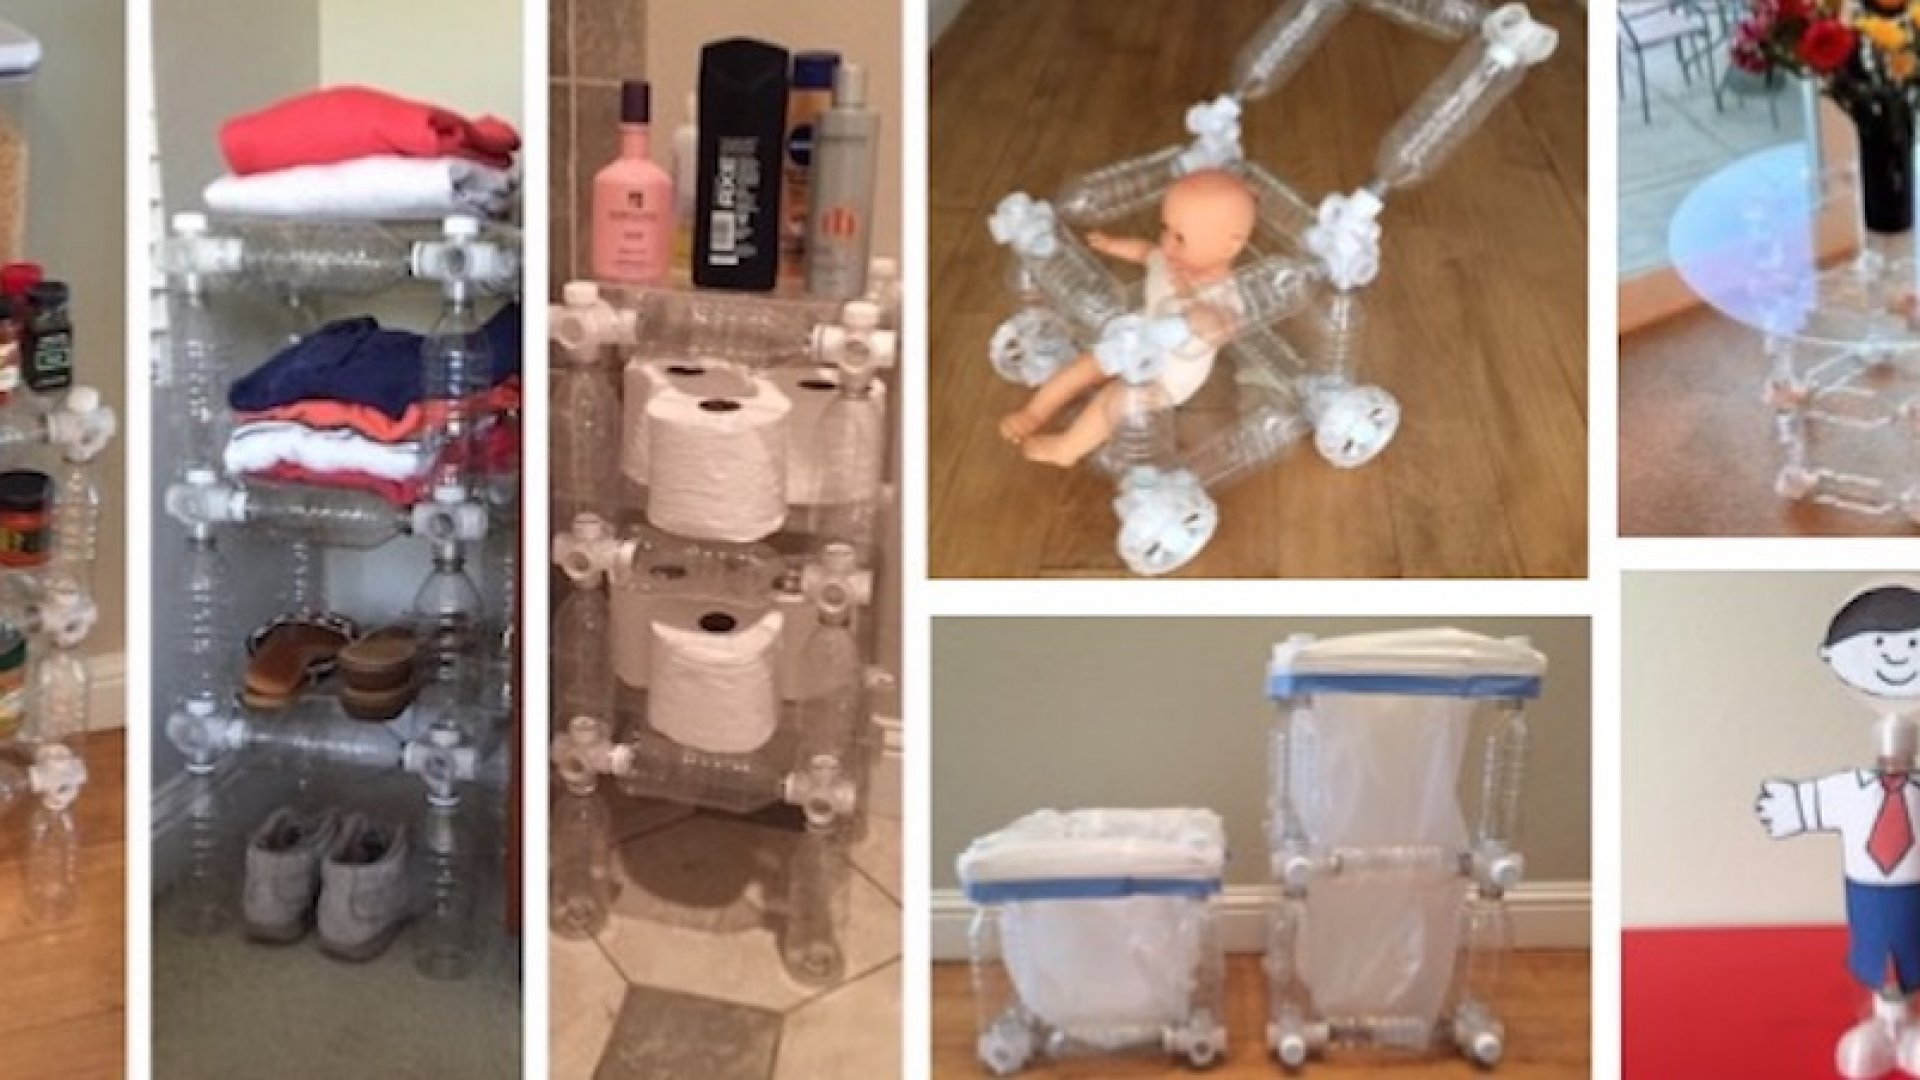 This Crazy Redesign to Plastic Bottles Can Turn Them Into Useful Household Items